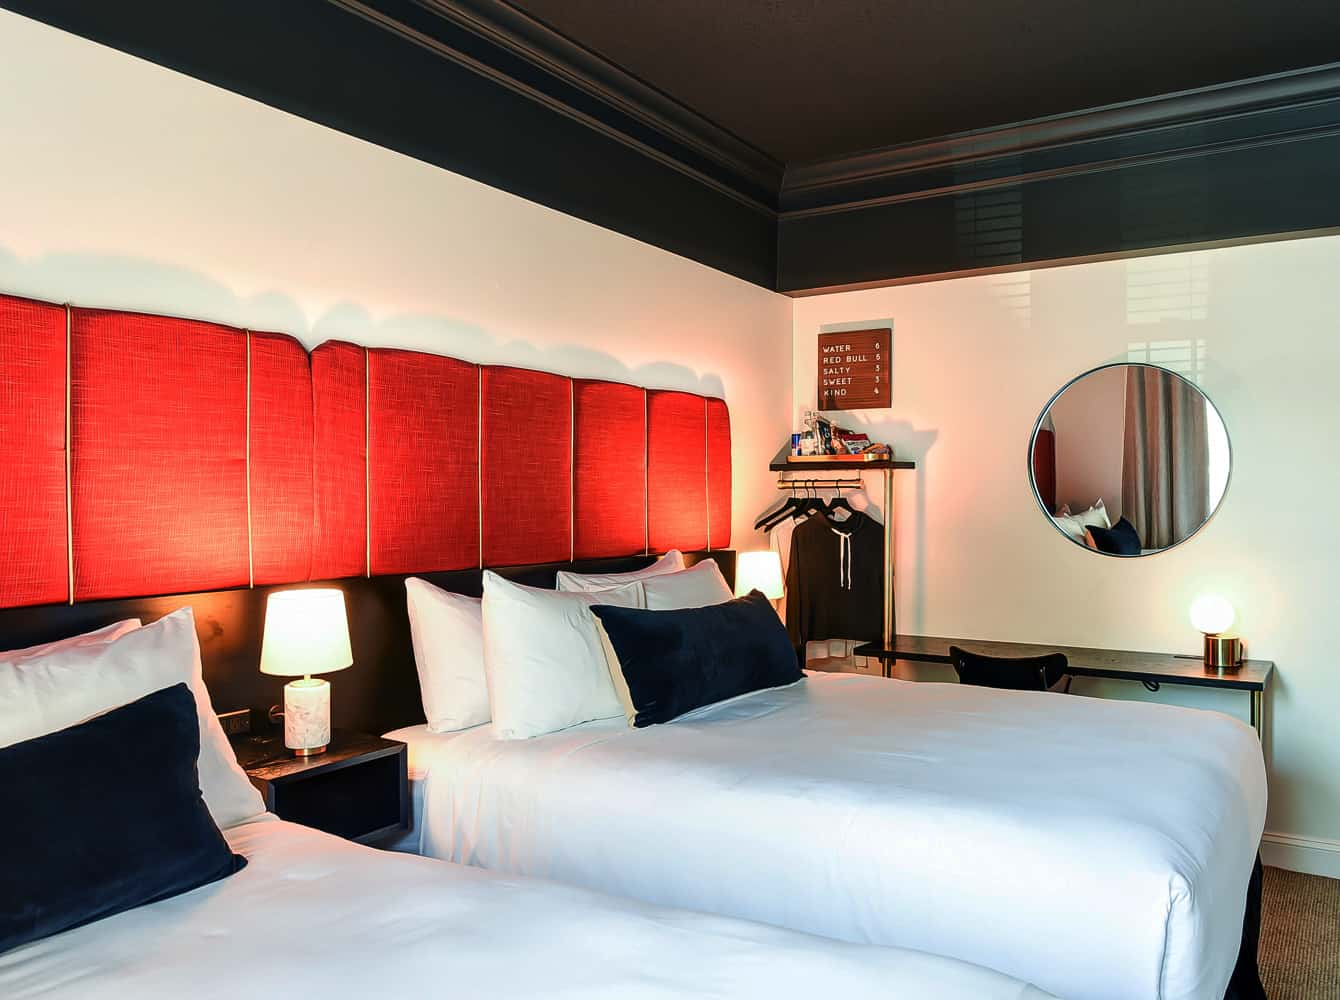 Dupont Circle Embassy Inn by FOUND - Rooms - Superior Queen Room with Two Queen Beds